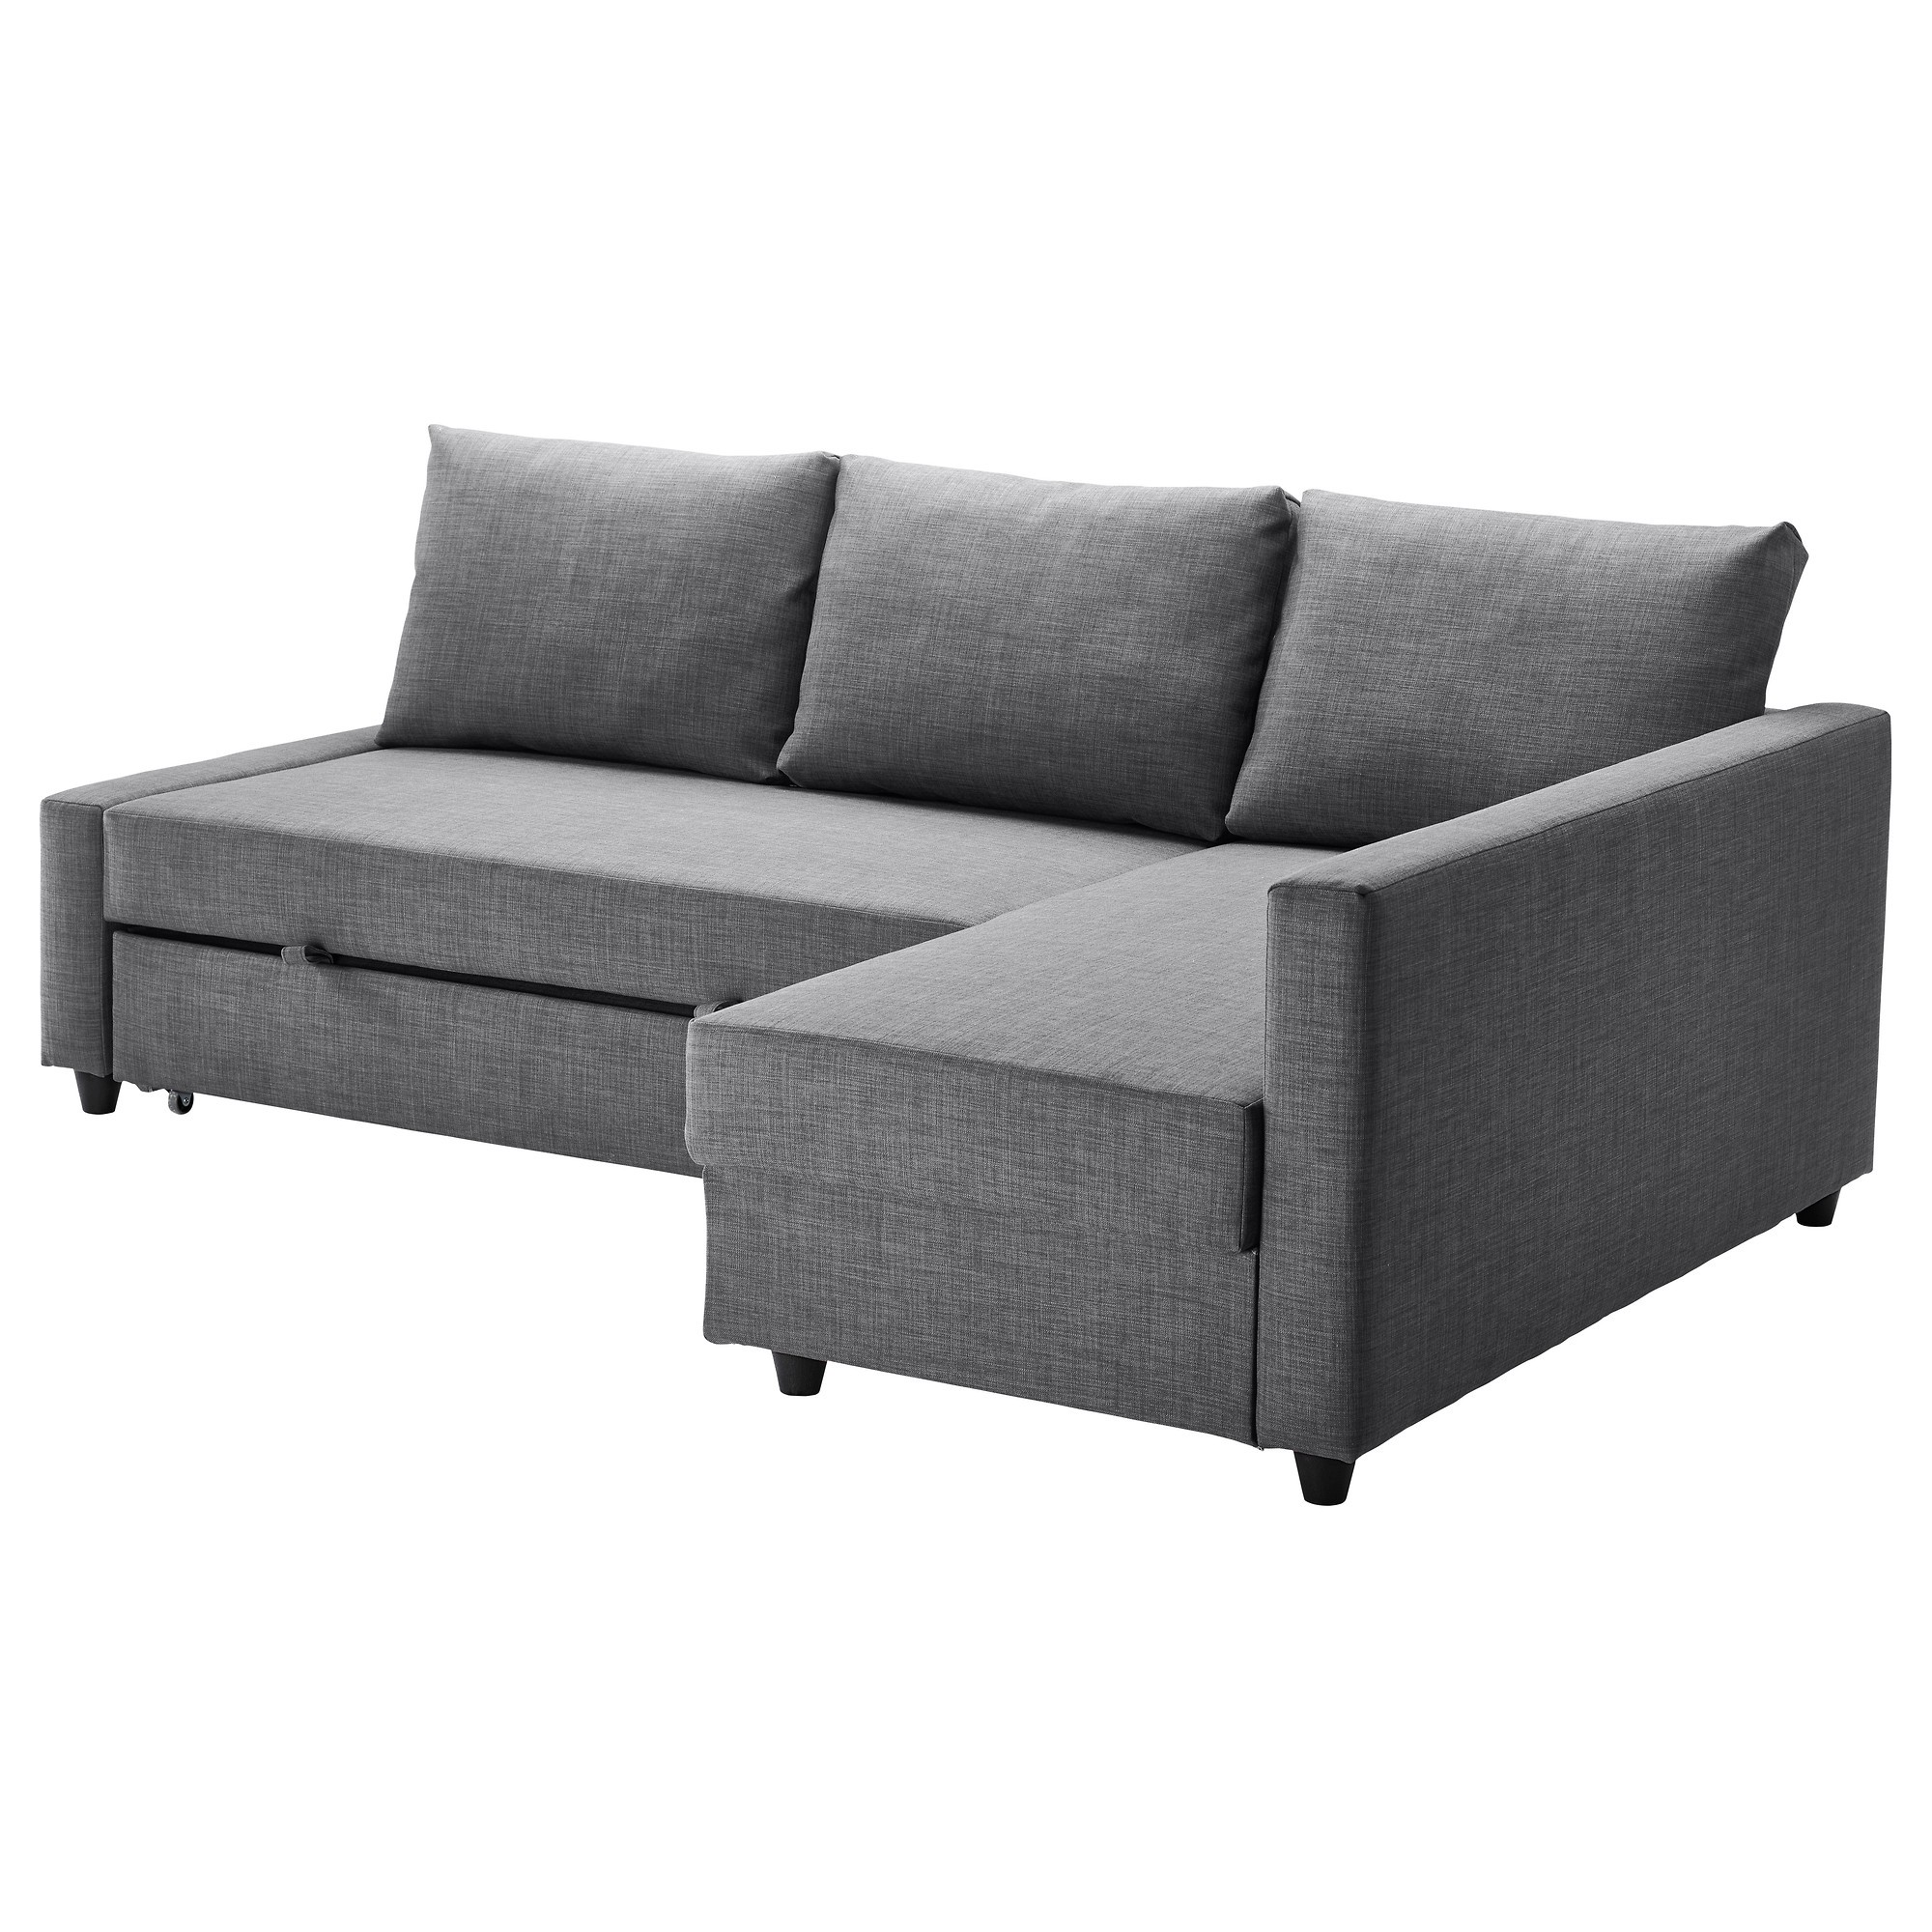 Sofa Couch Bed Unique Friheten Corner sofa Bed with Storage Skiftebo Dark Gray Ikea Design